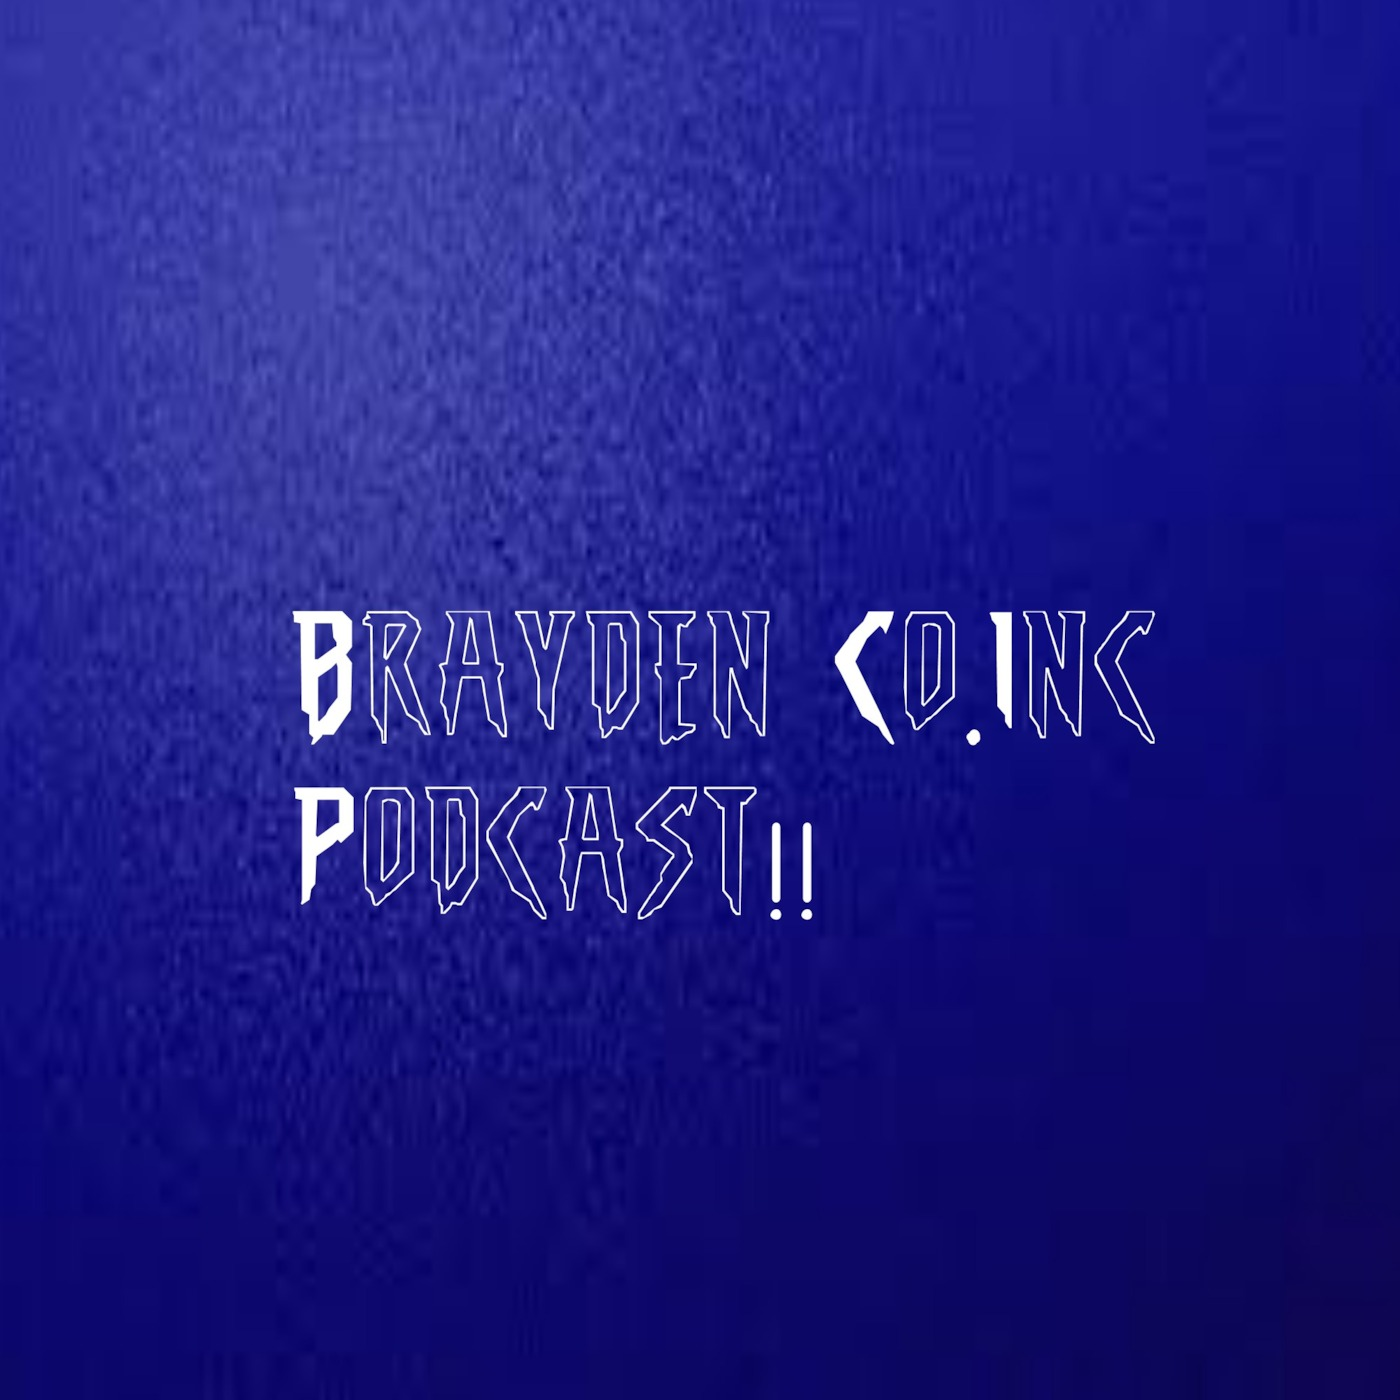 Brayden Co.Inc Podcast